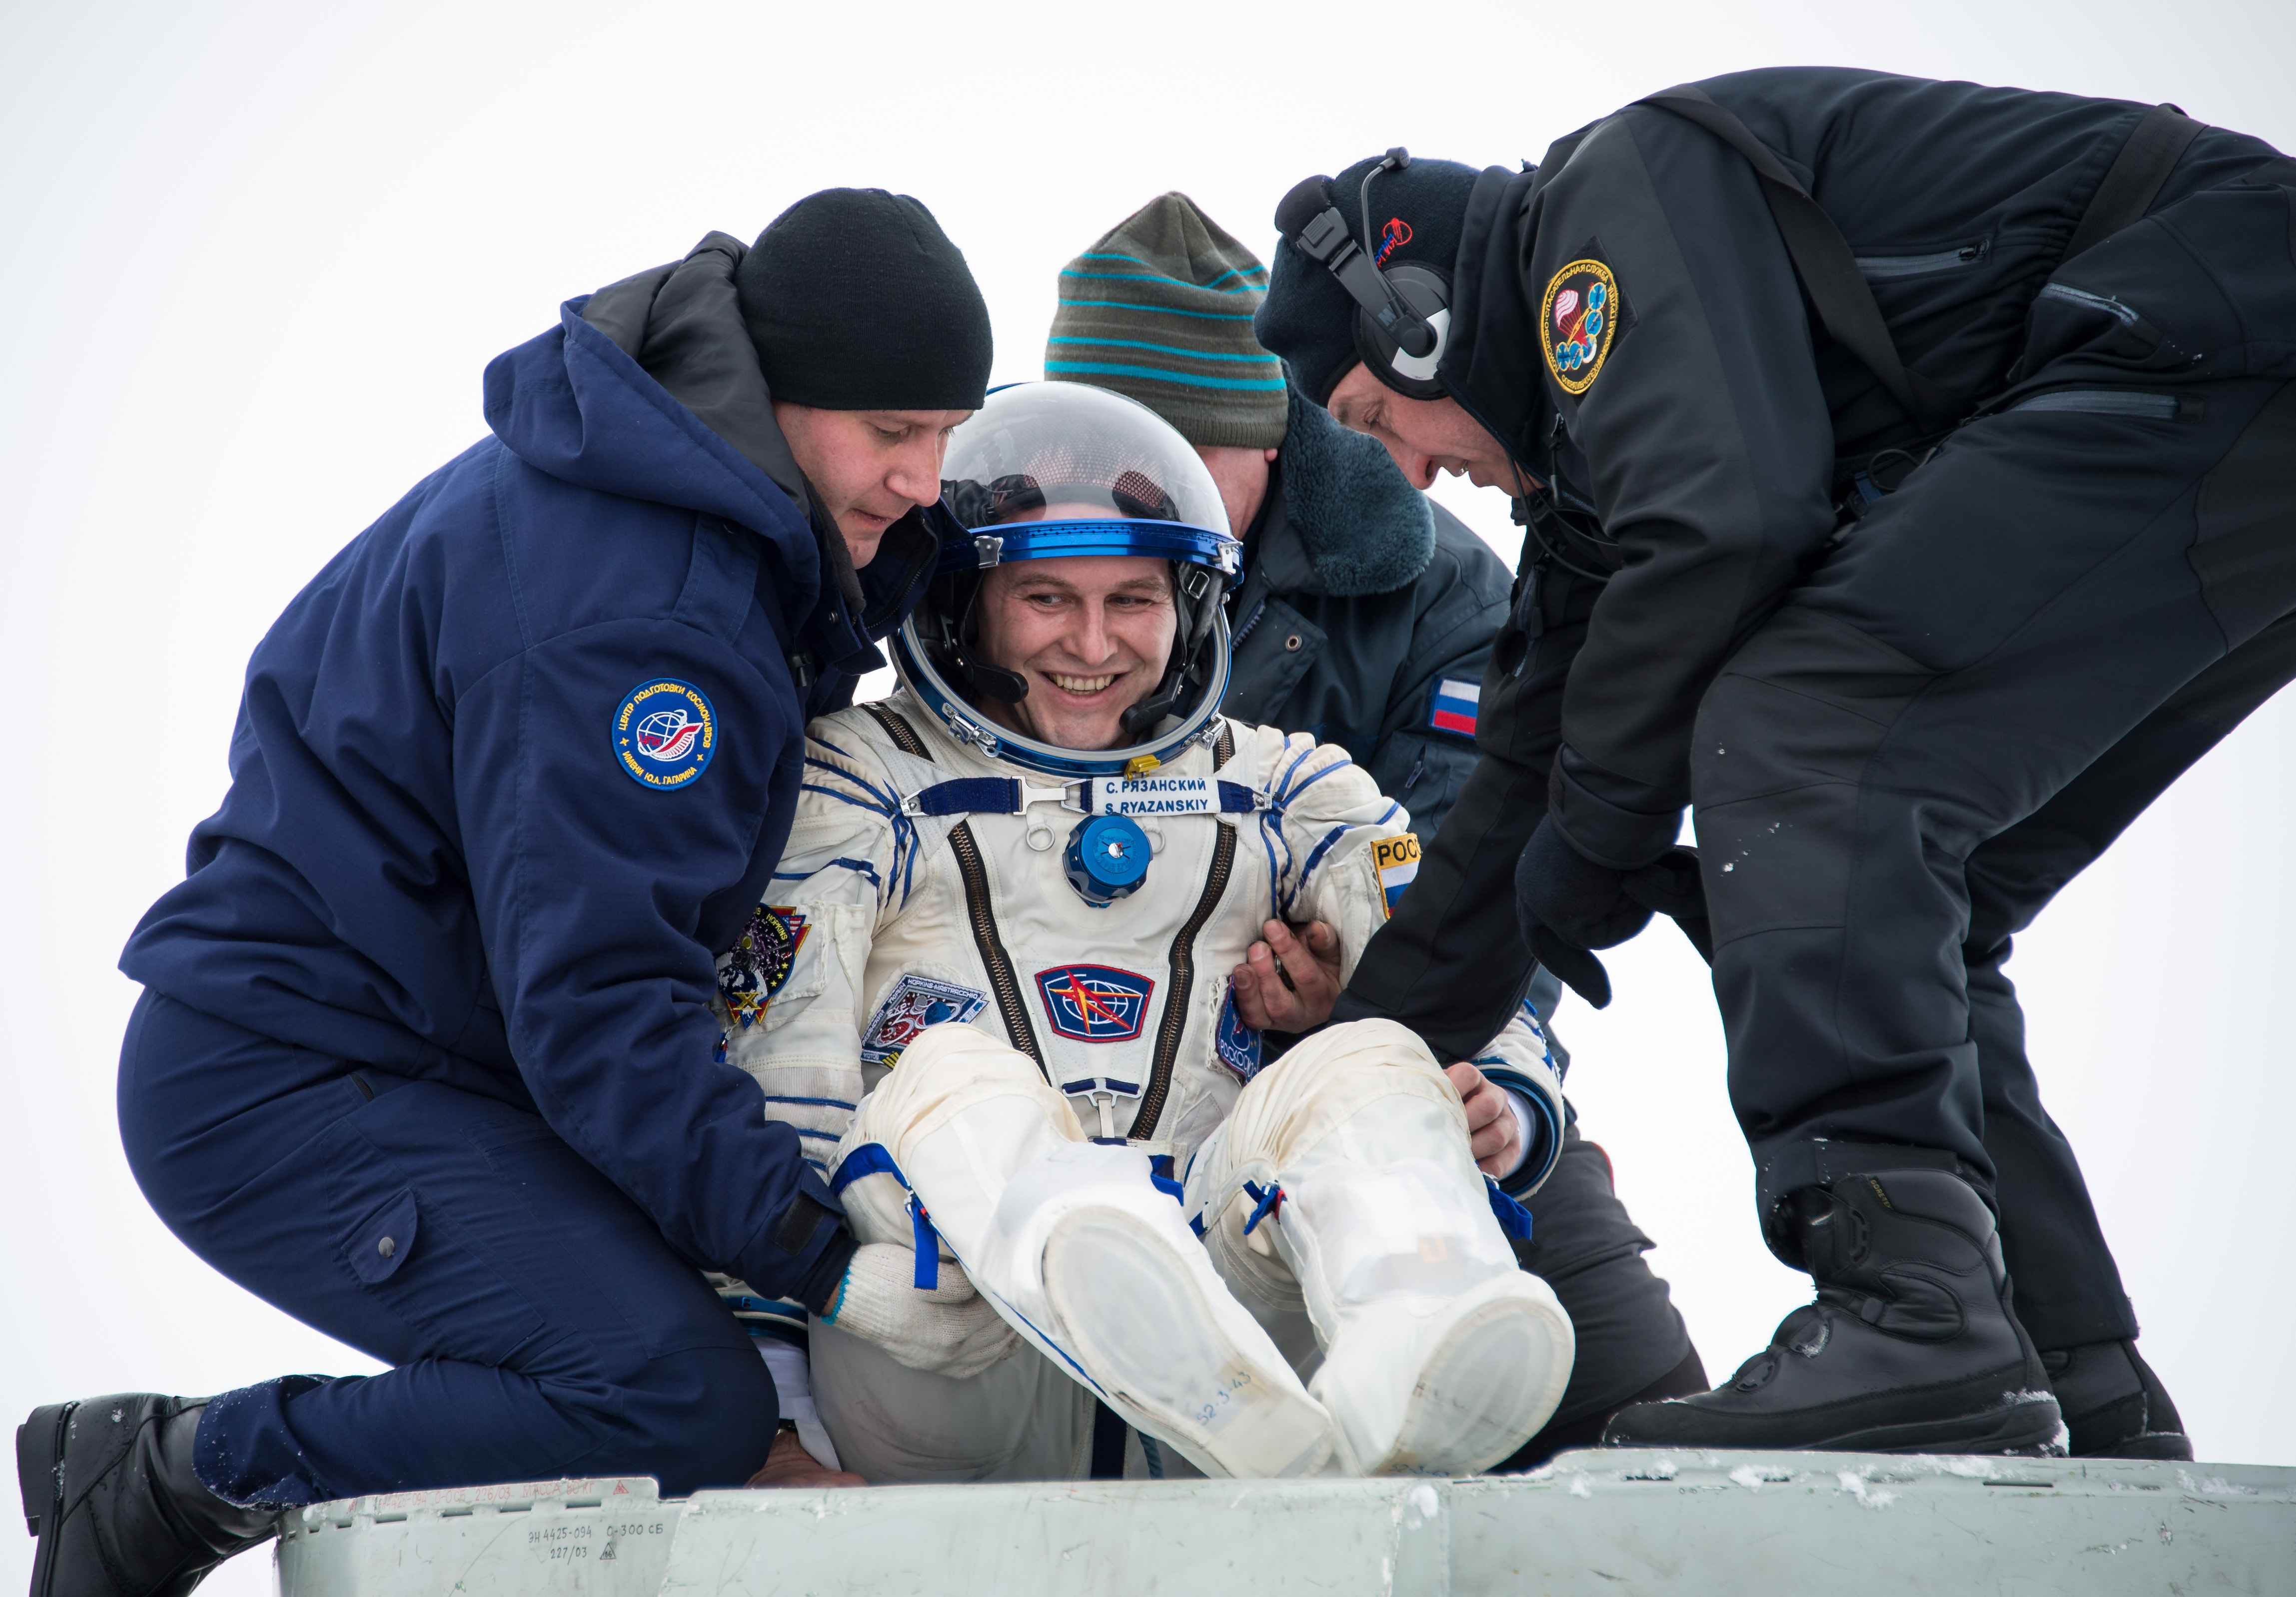 Expedition 38 Soyuz Landing: Sergey Ryazanskiy Returns Home